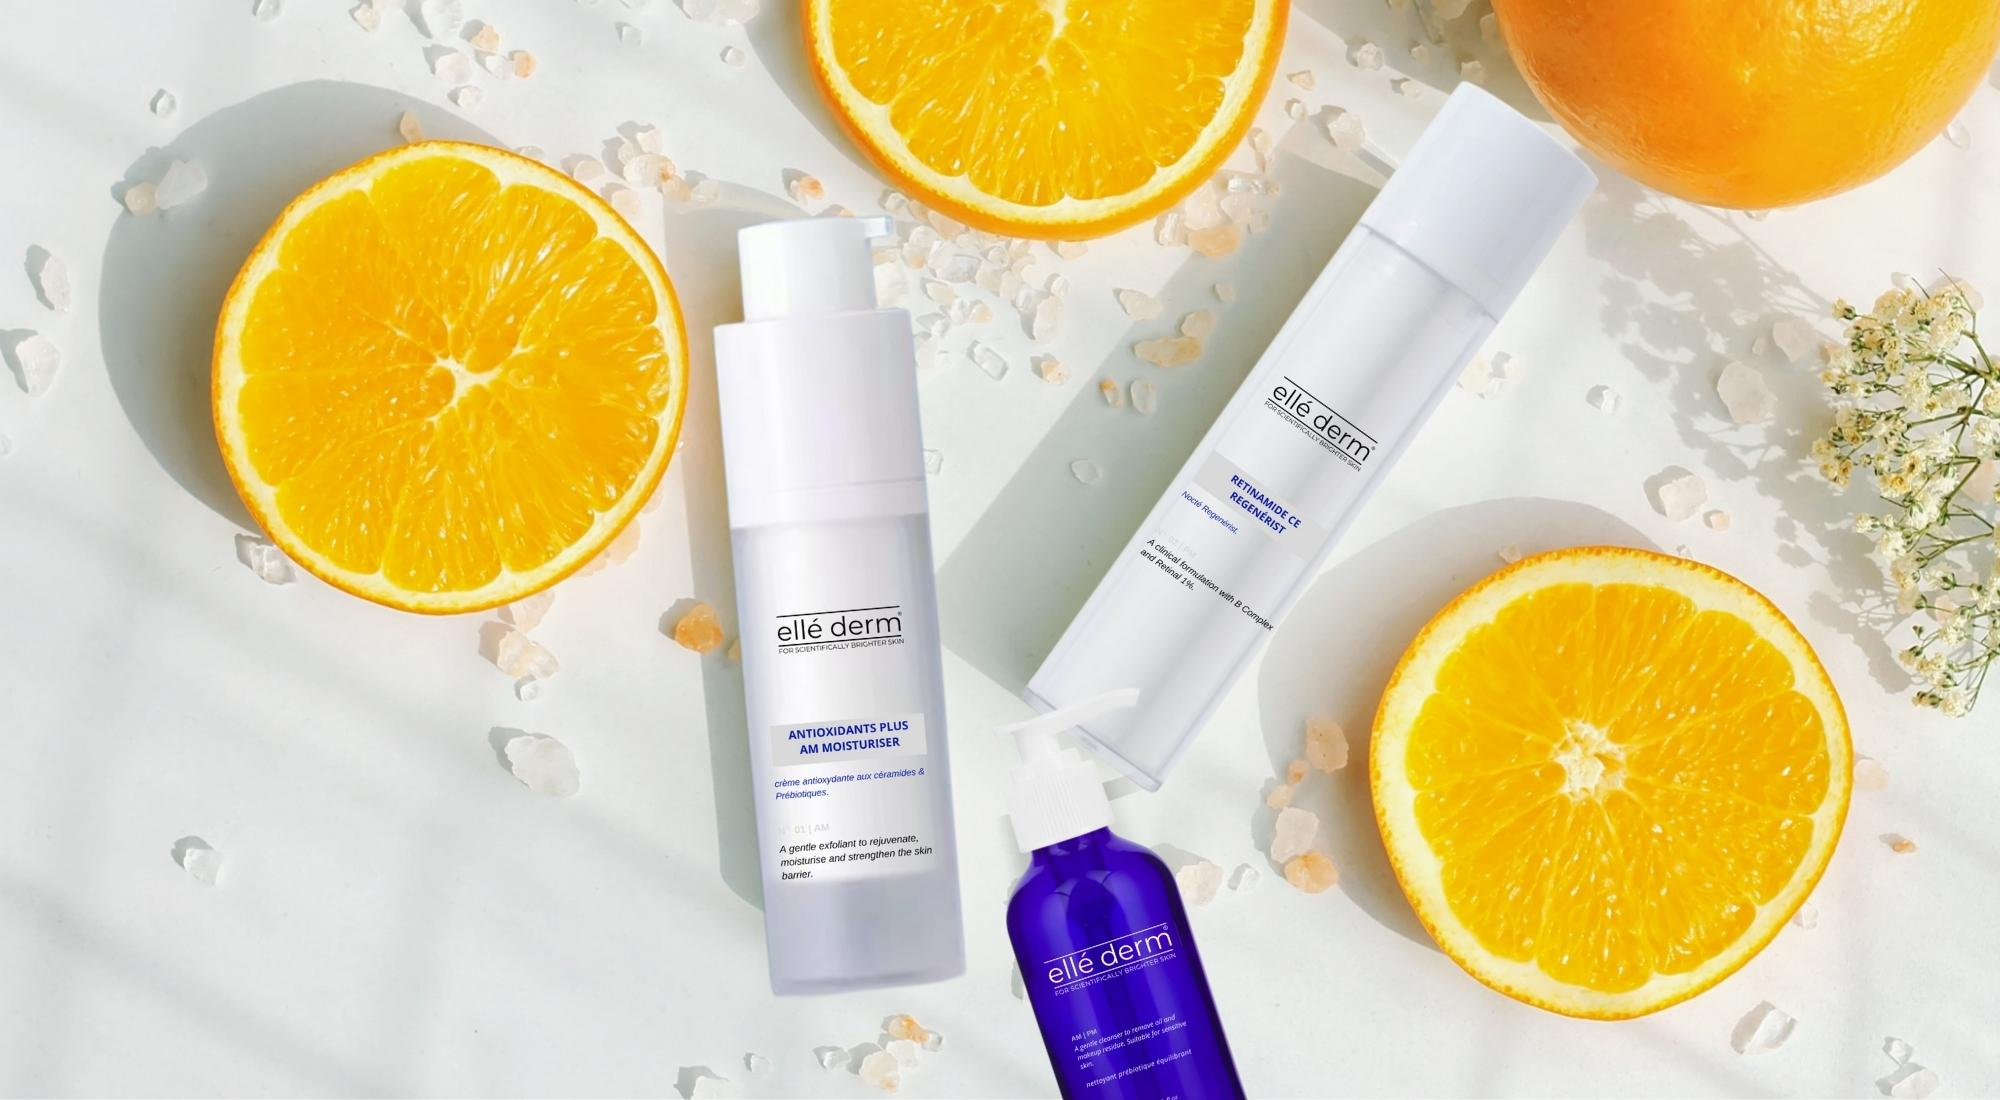 ANTIAGEING FOR SENSITIVE SKIN